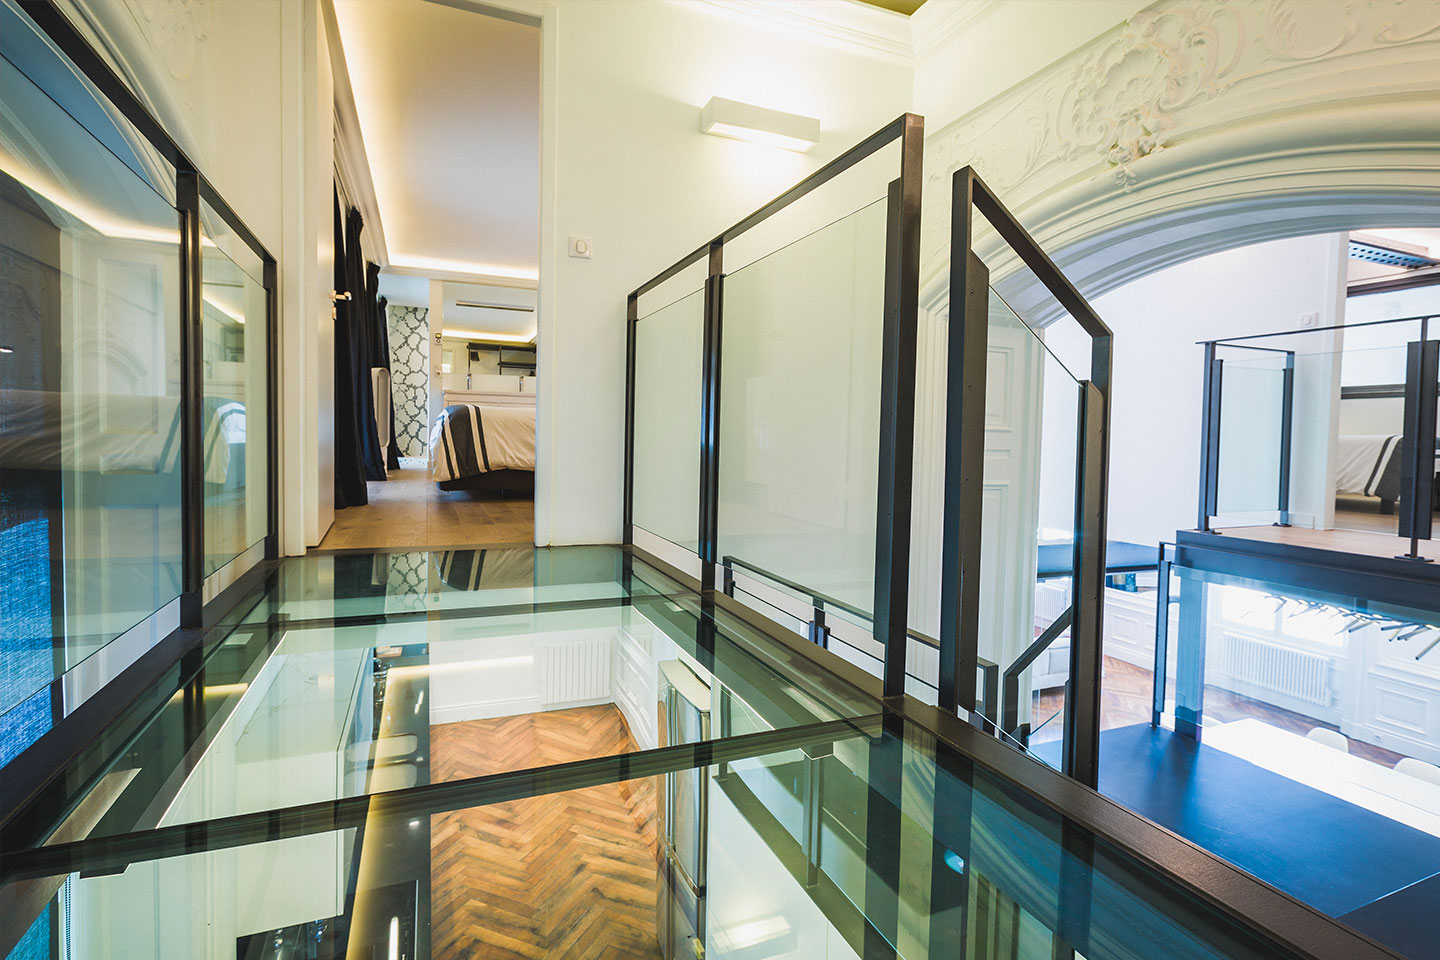 11 Location Biarritz LOFT